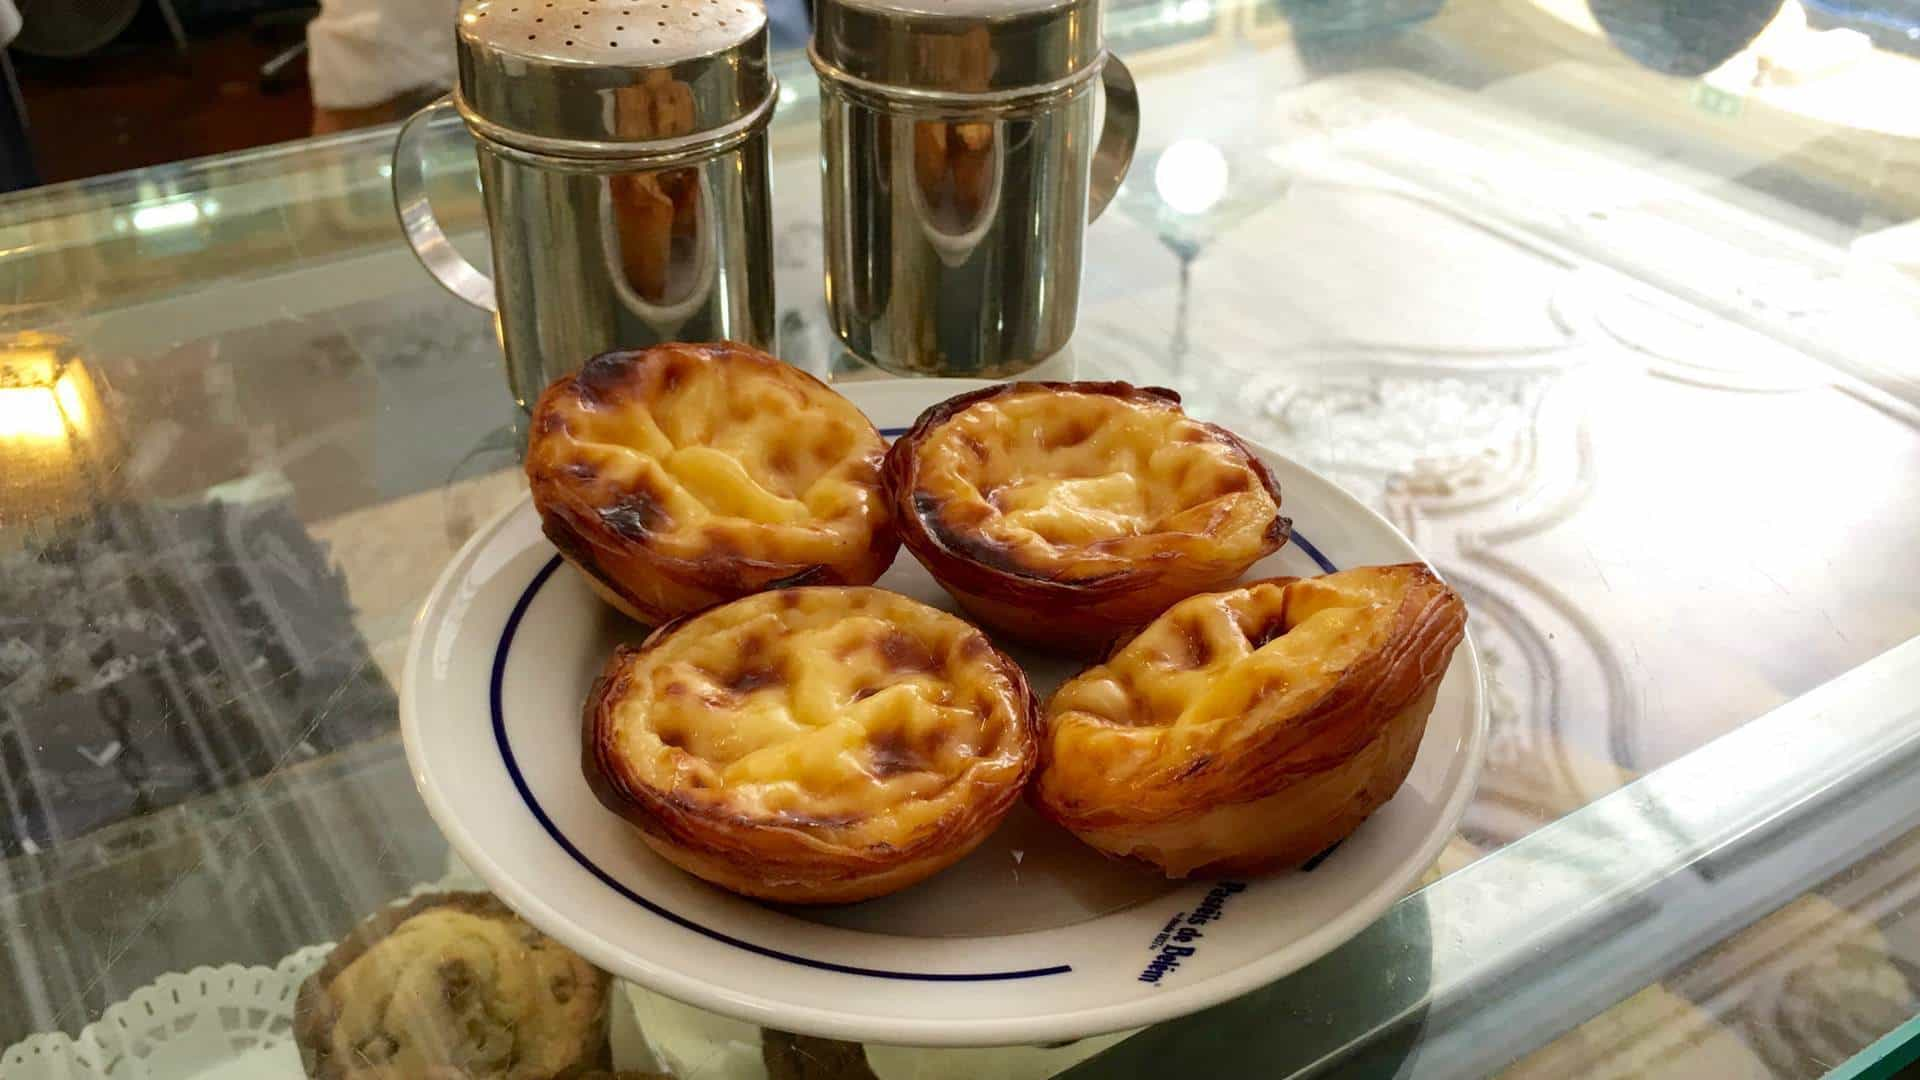 Best Pastel de Nata in Lisbon: Belem vs. Manteigaria